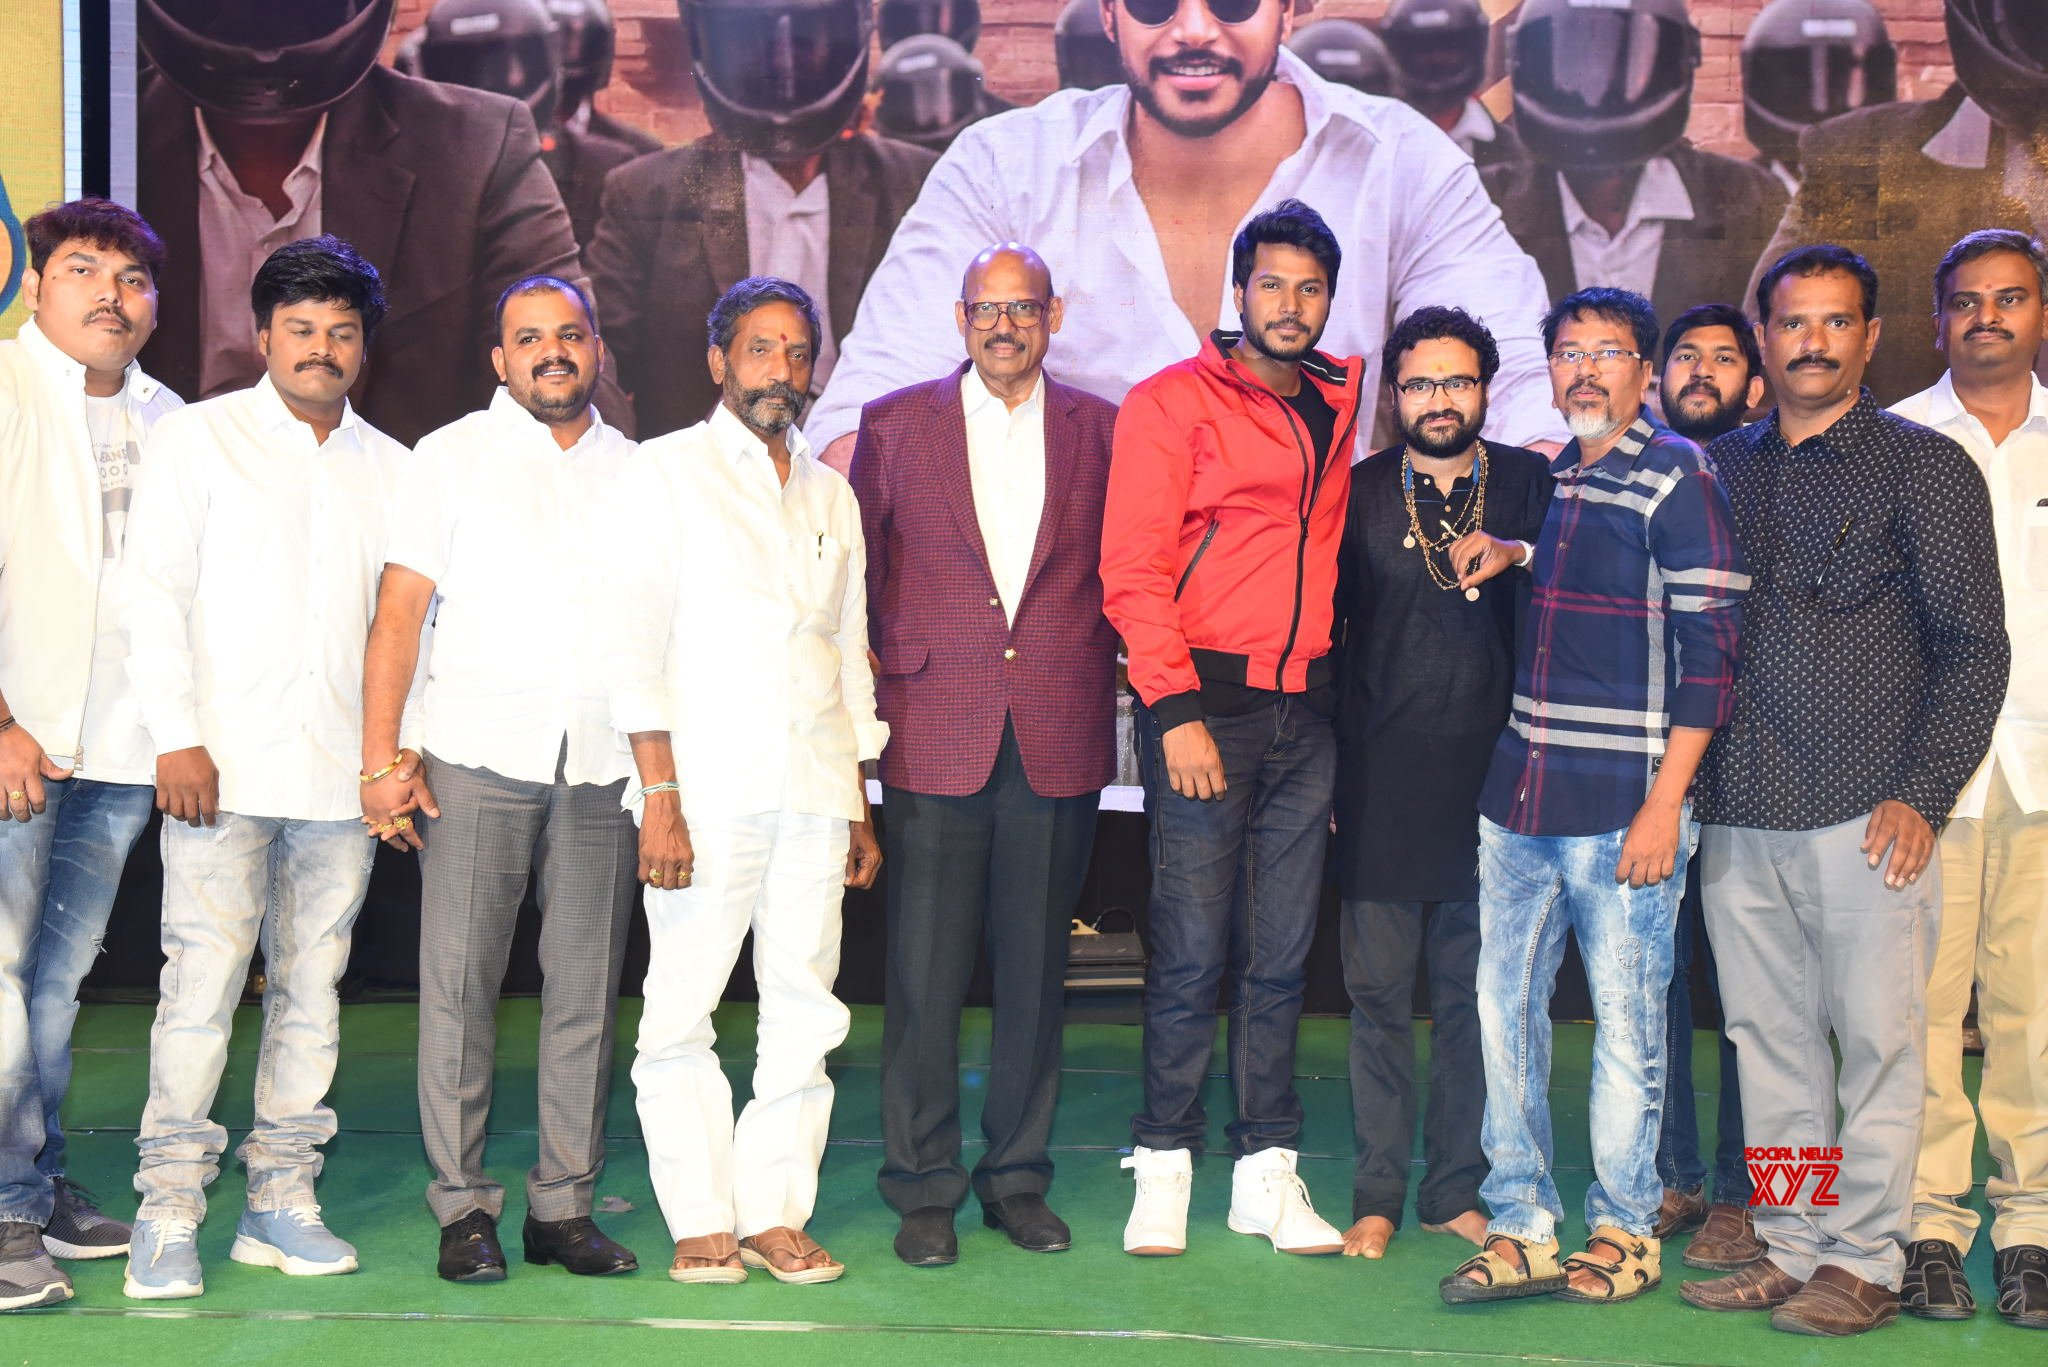 Tenali Ramakrishna BABL movie  pre-release event Held in grand style at STBC College Grounds in Kurnool